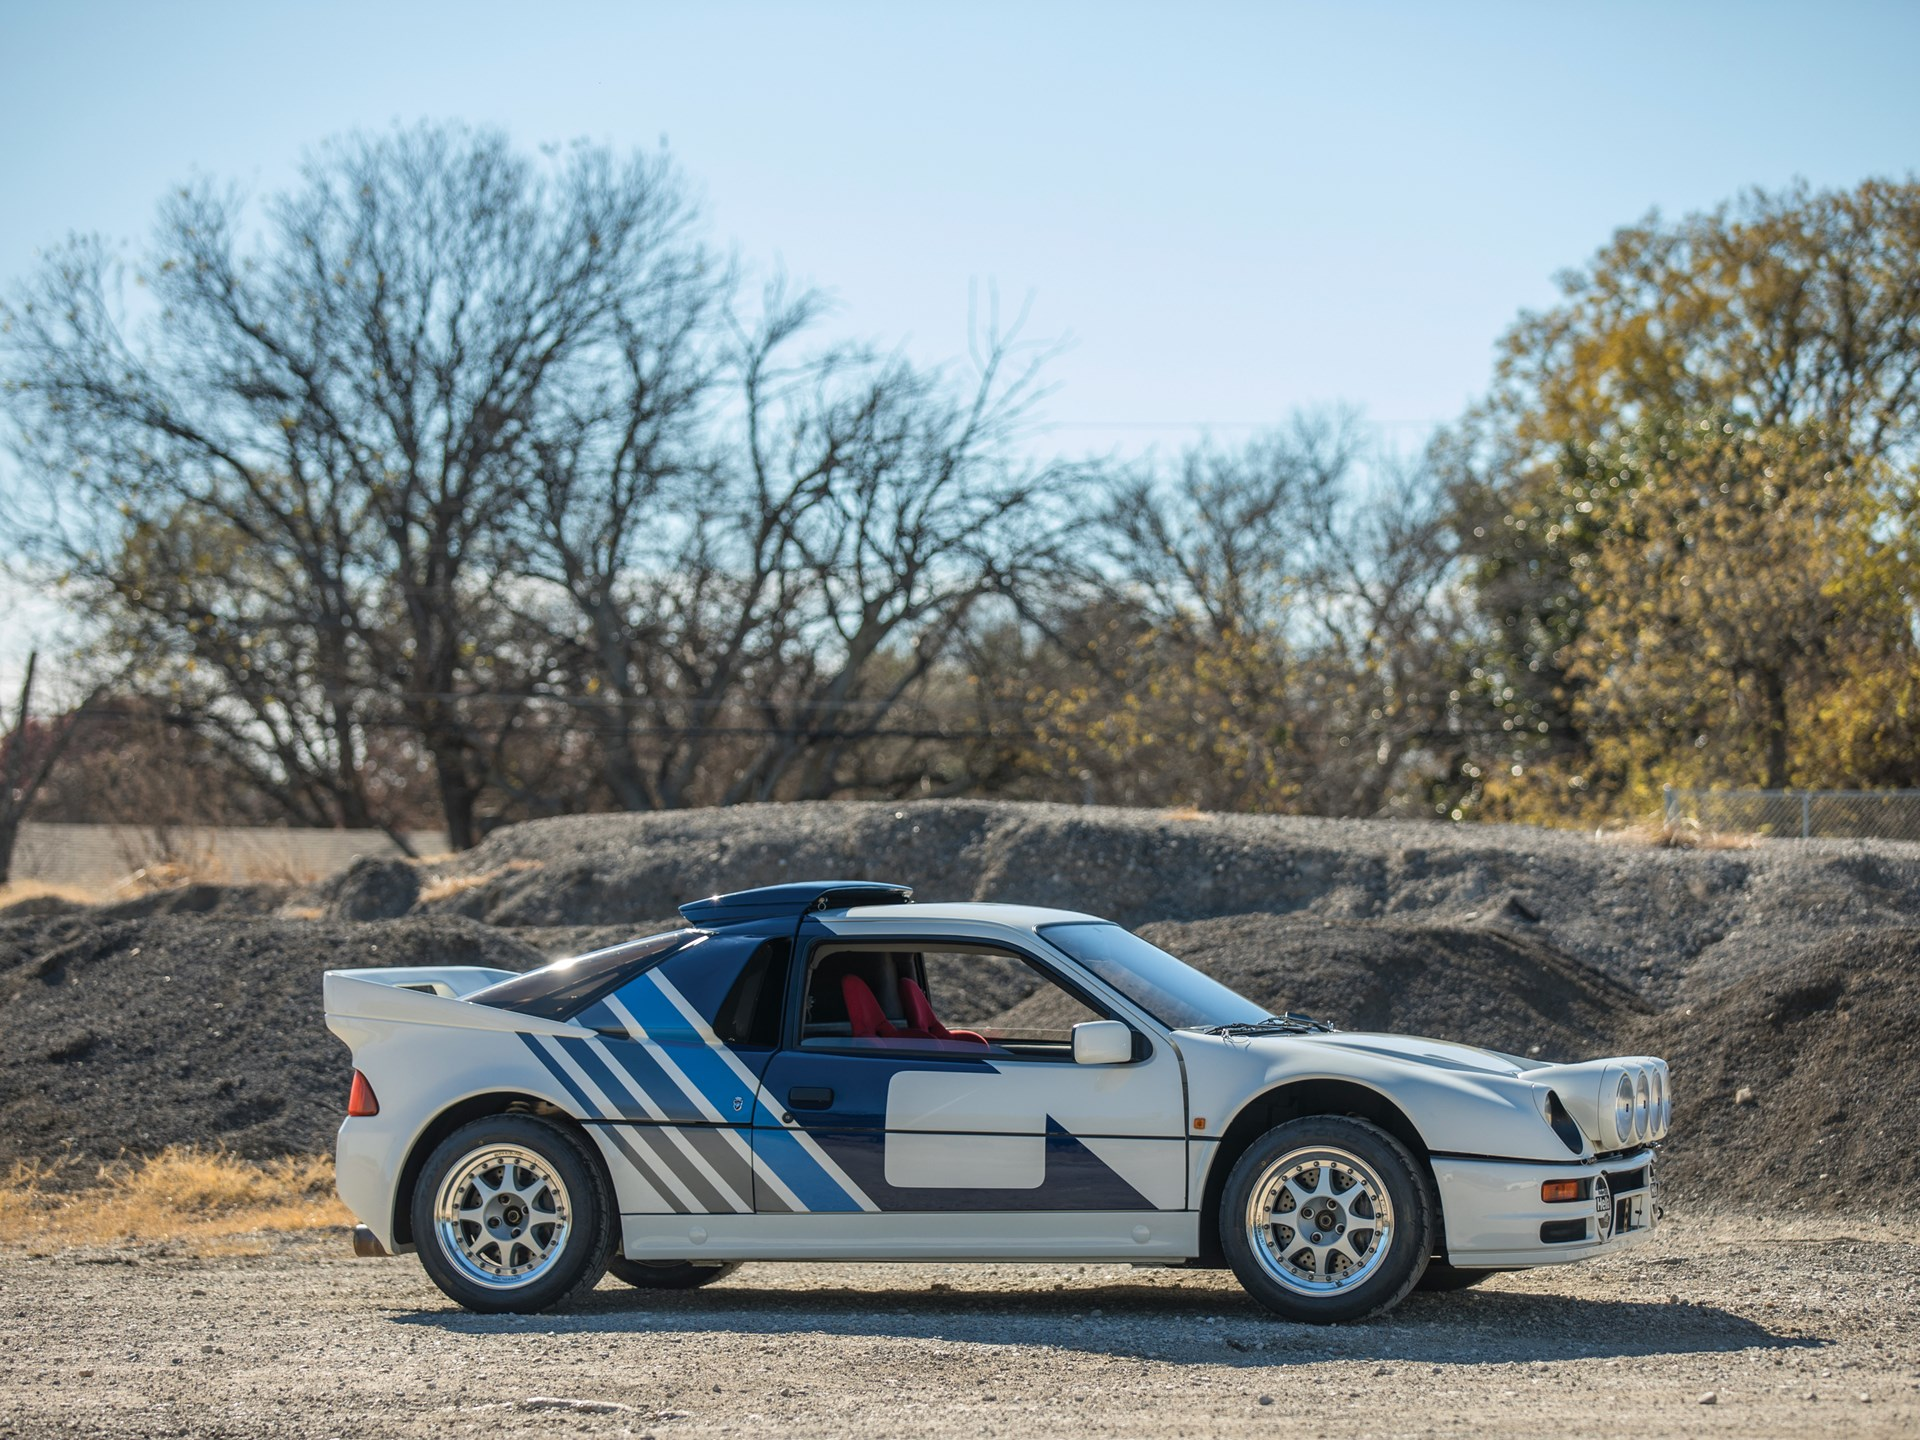 1986 Ford RS200 Evolution side view gravel